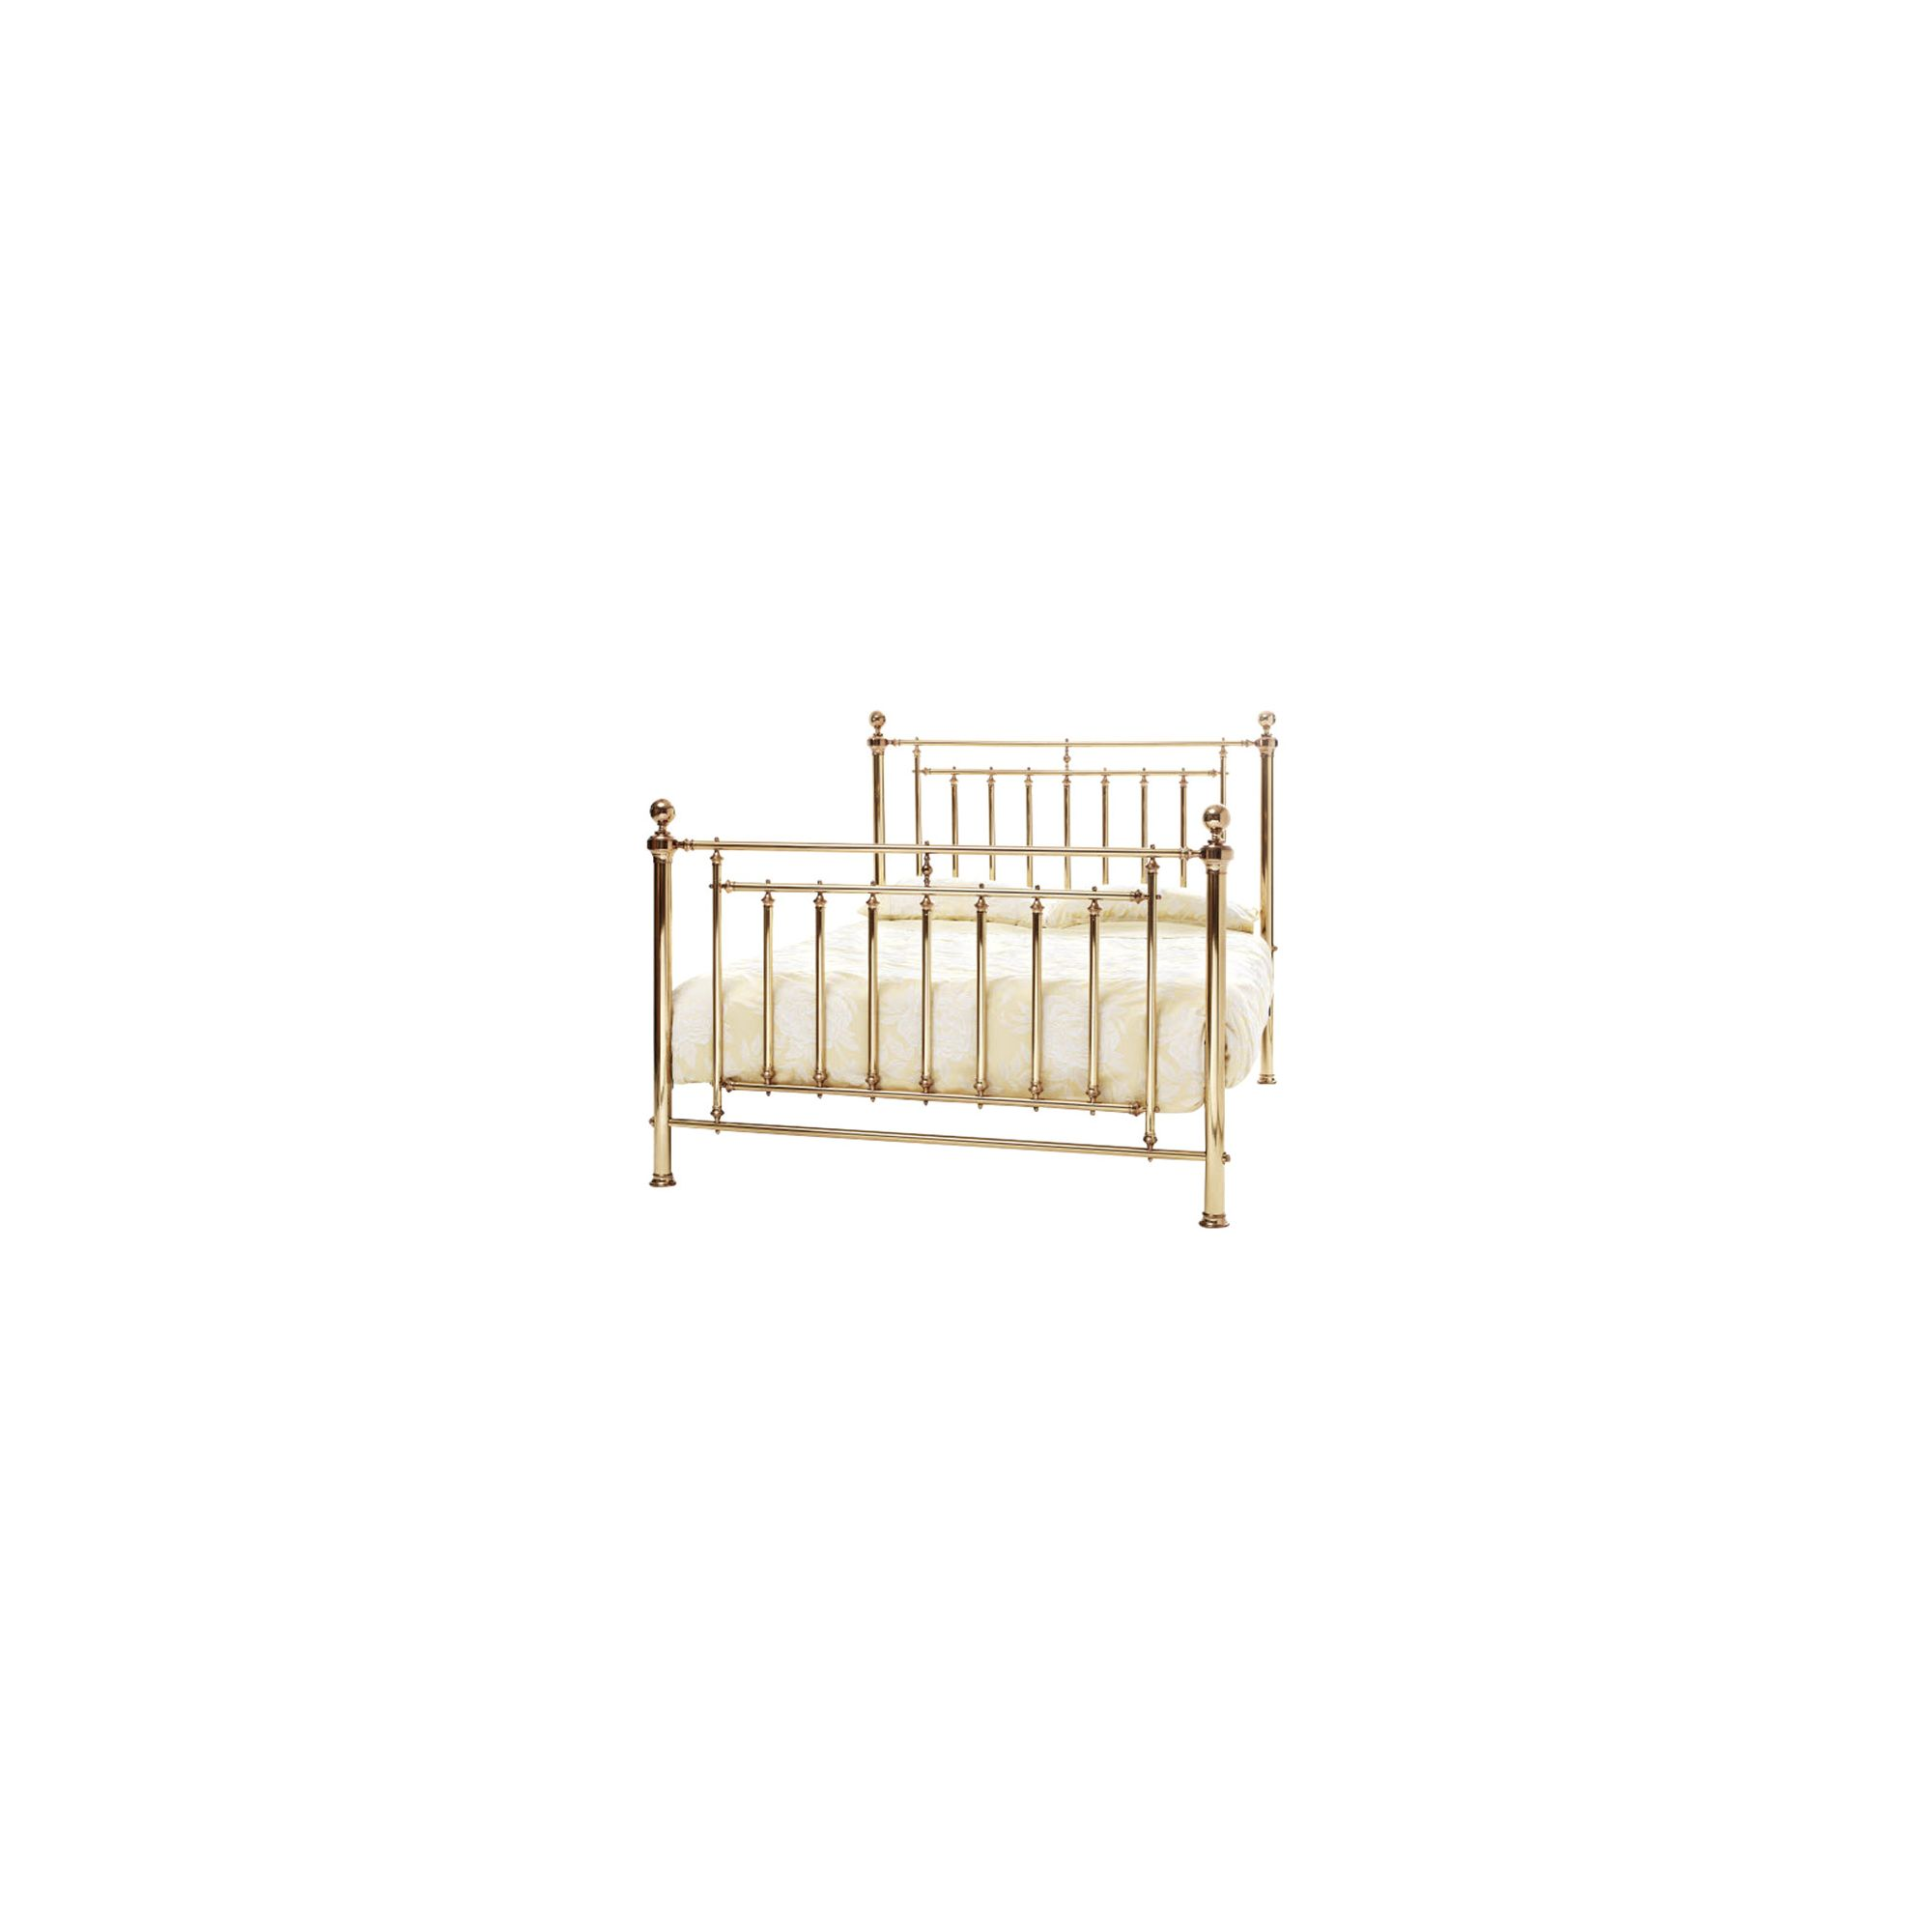 Serene Furnishings Solomon Bed - Brass - Super King at Tescos Direct